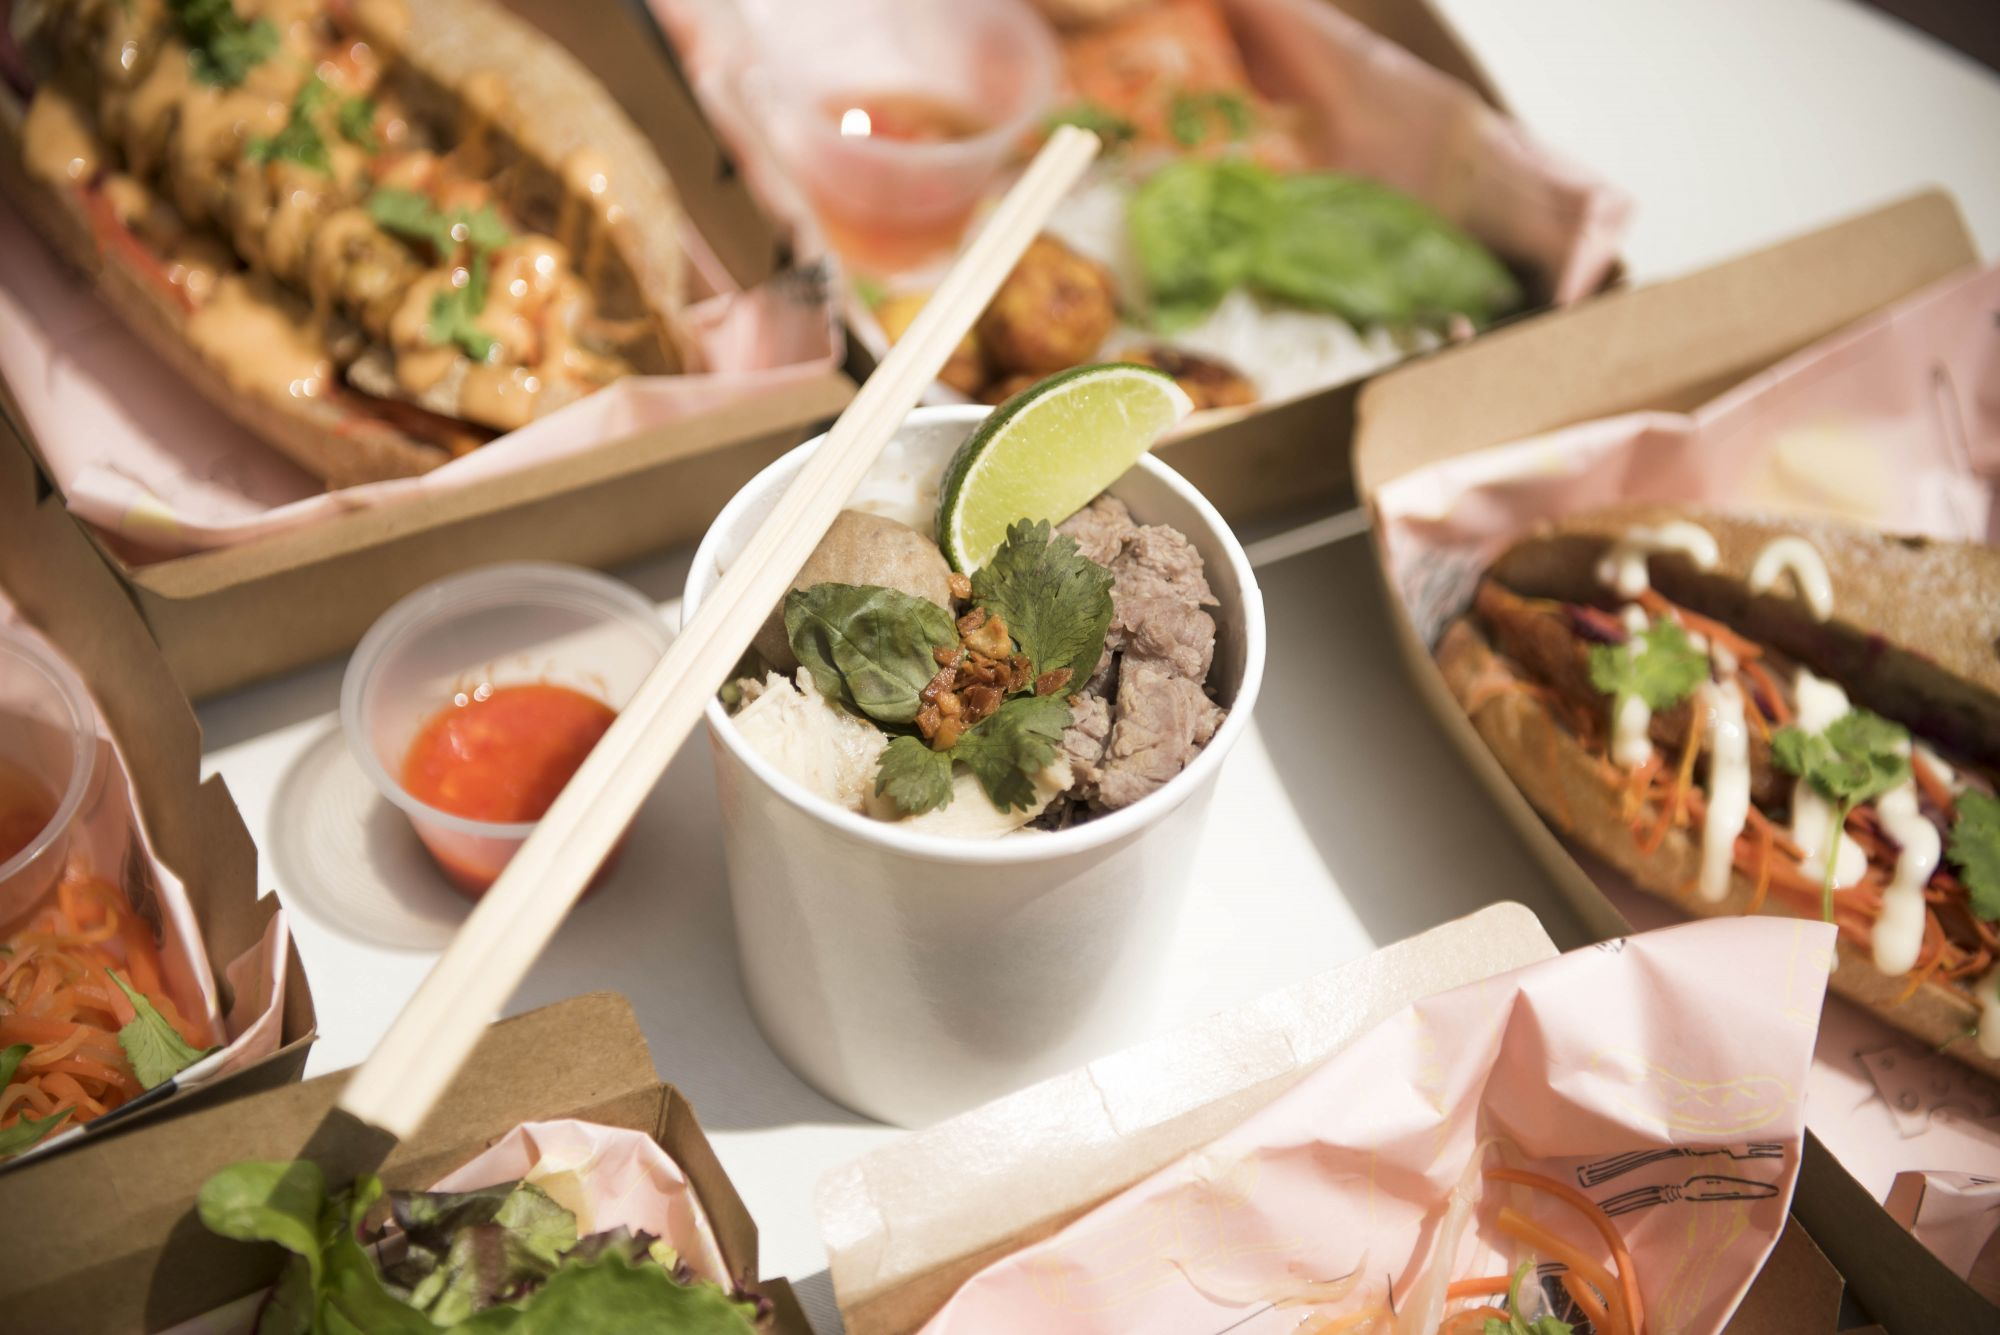 5 Gourmet Experiences At SPRMRKT's Vietnam Cultural Showcase Not To Be Missed